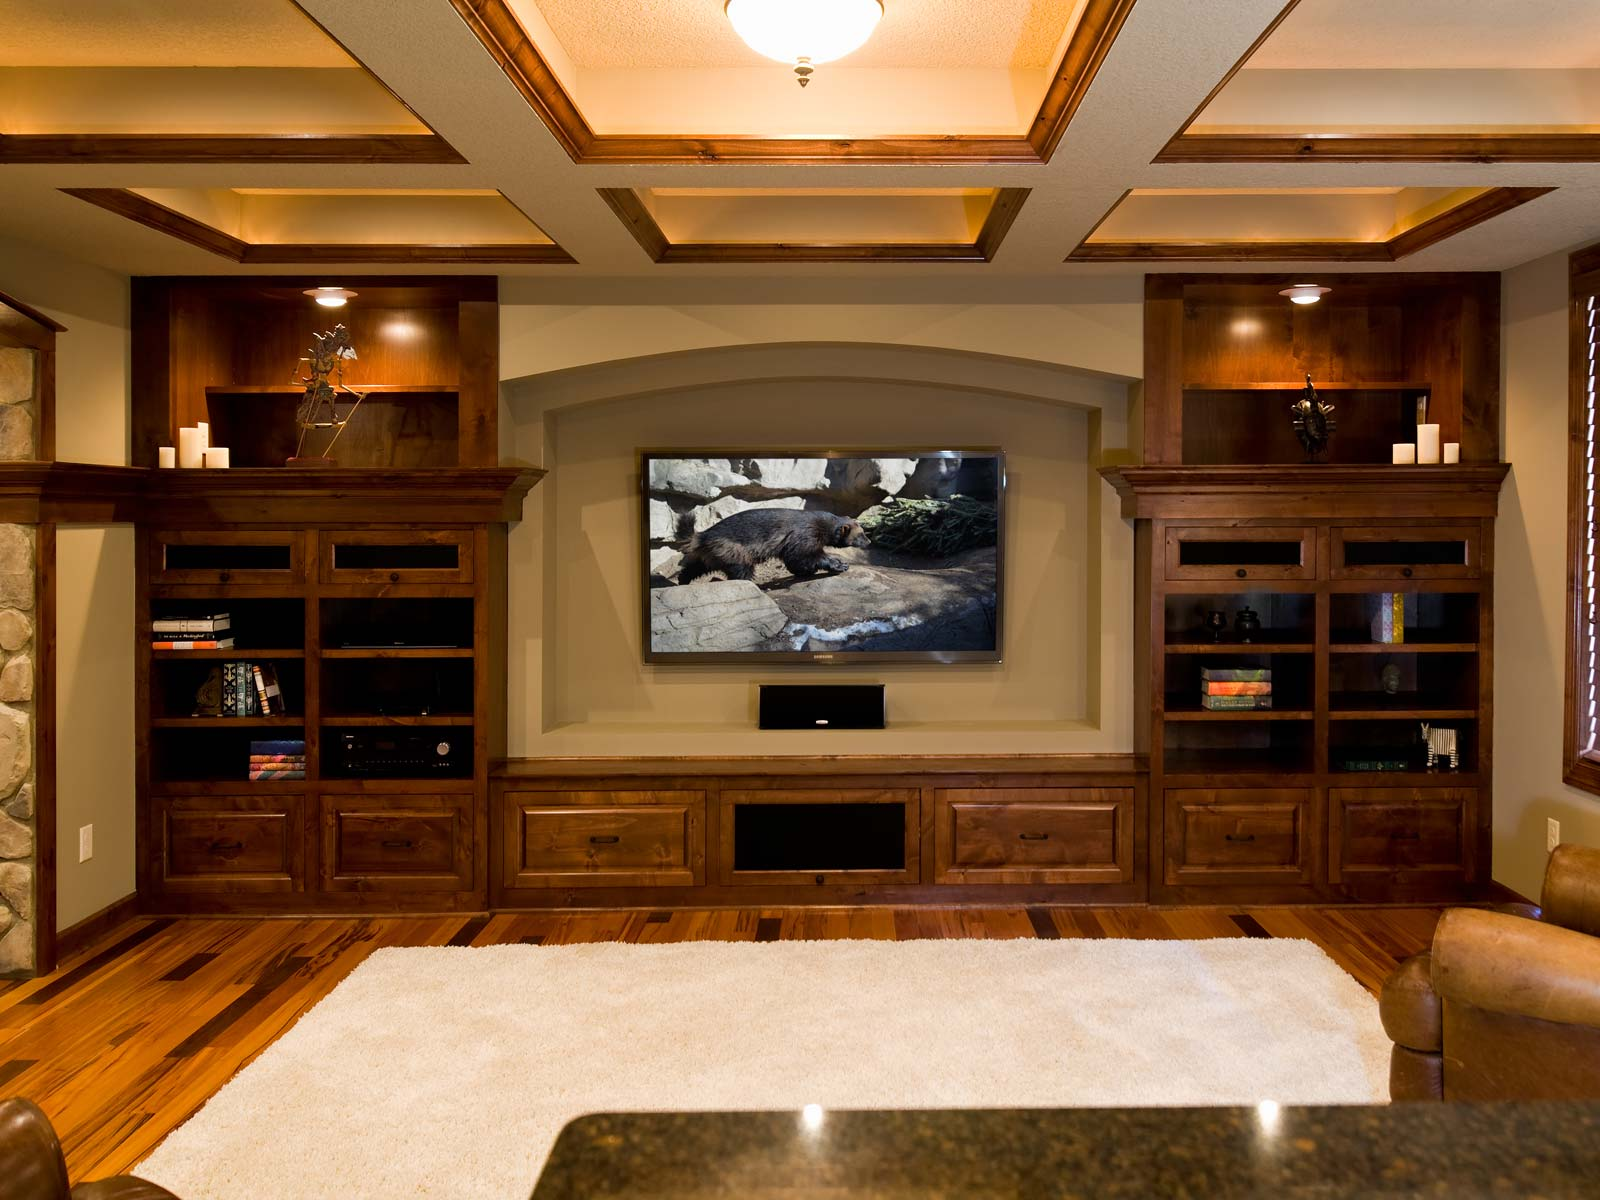 Superieur ... Basement Remodel   Home Theater TV ...